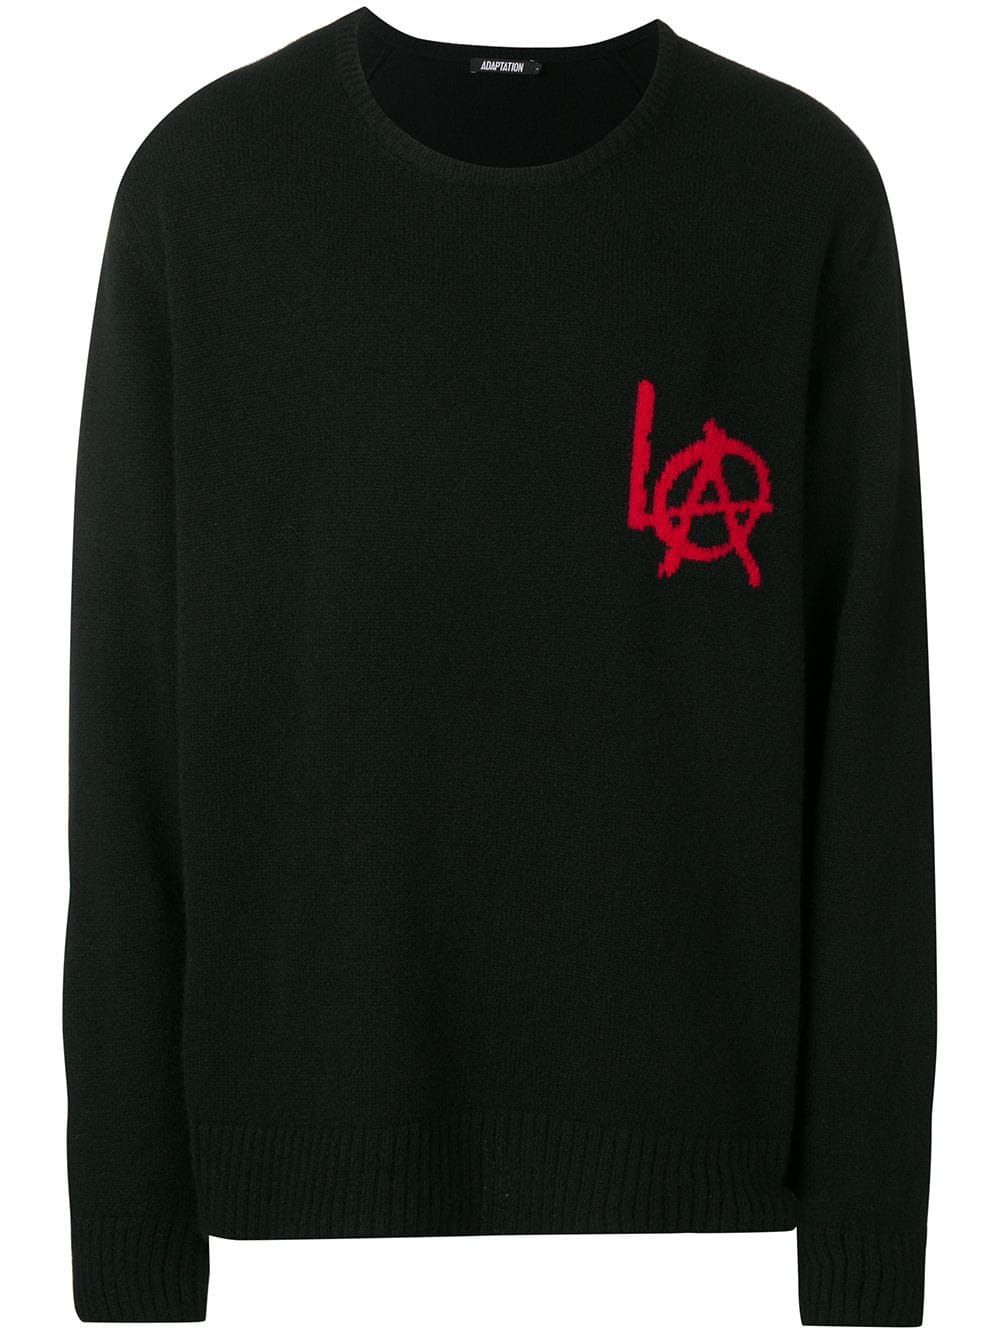 b221ae19762 Adaptation LA Crew Neck Sweater in 2019 | Products | Sweaters, Black ...